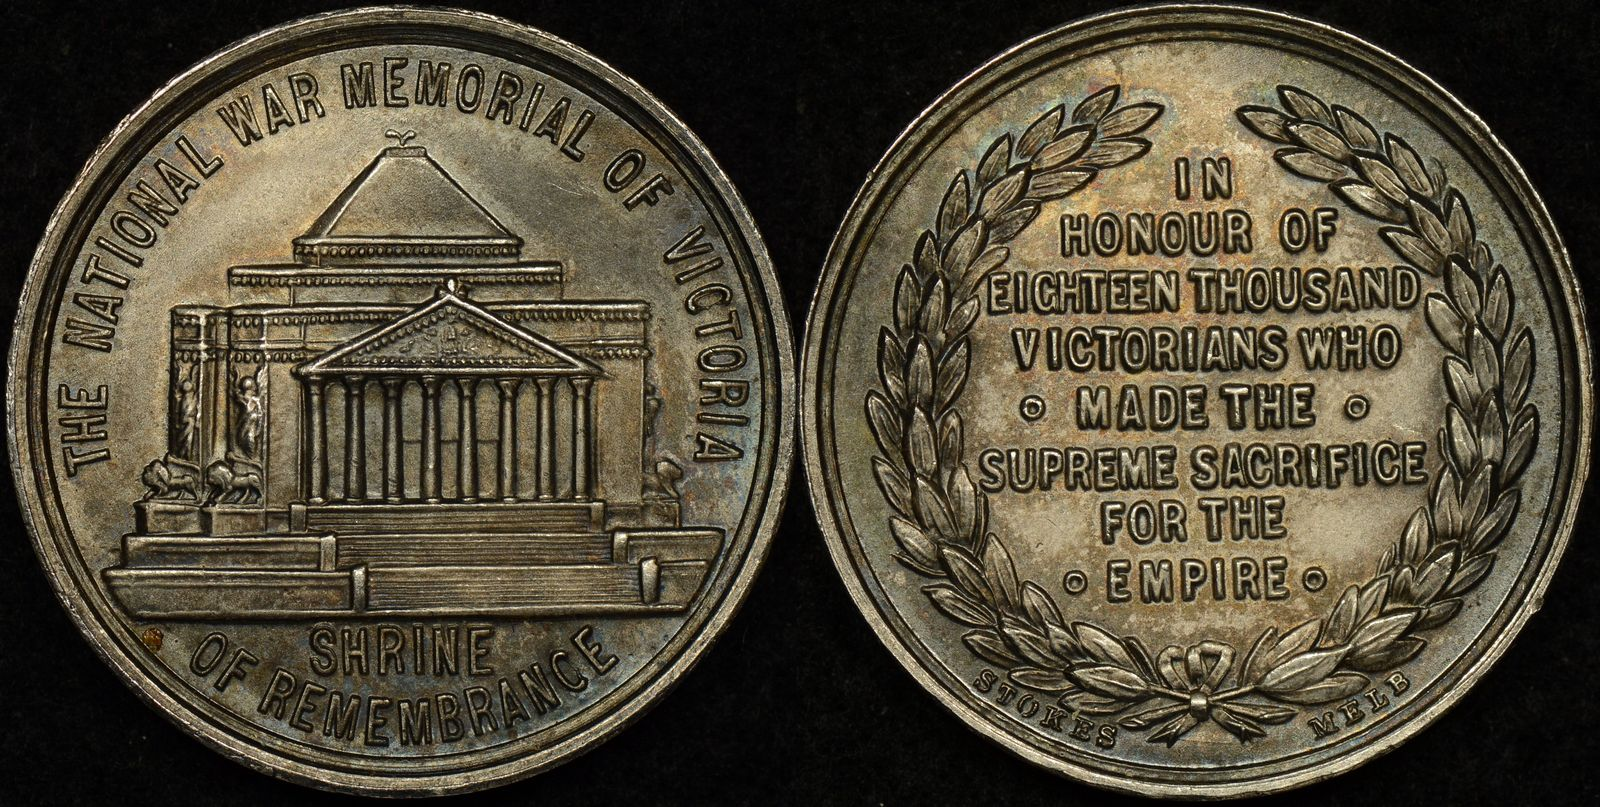 1934 National War Memorial of Victora – Shrine of Remembrance Silver Medal